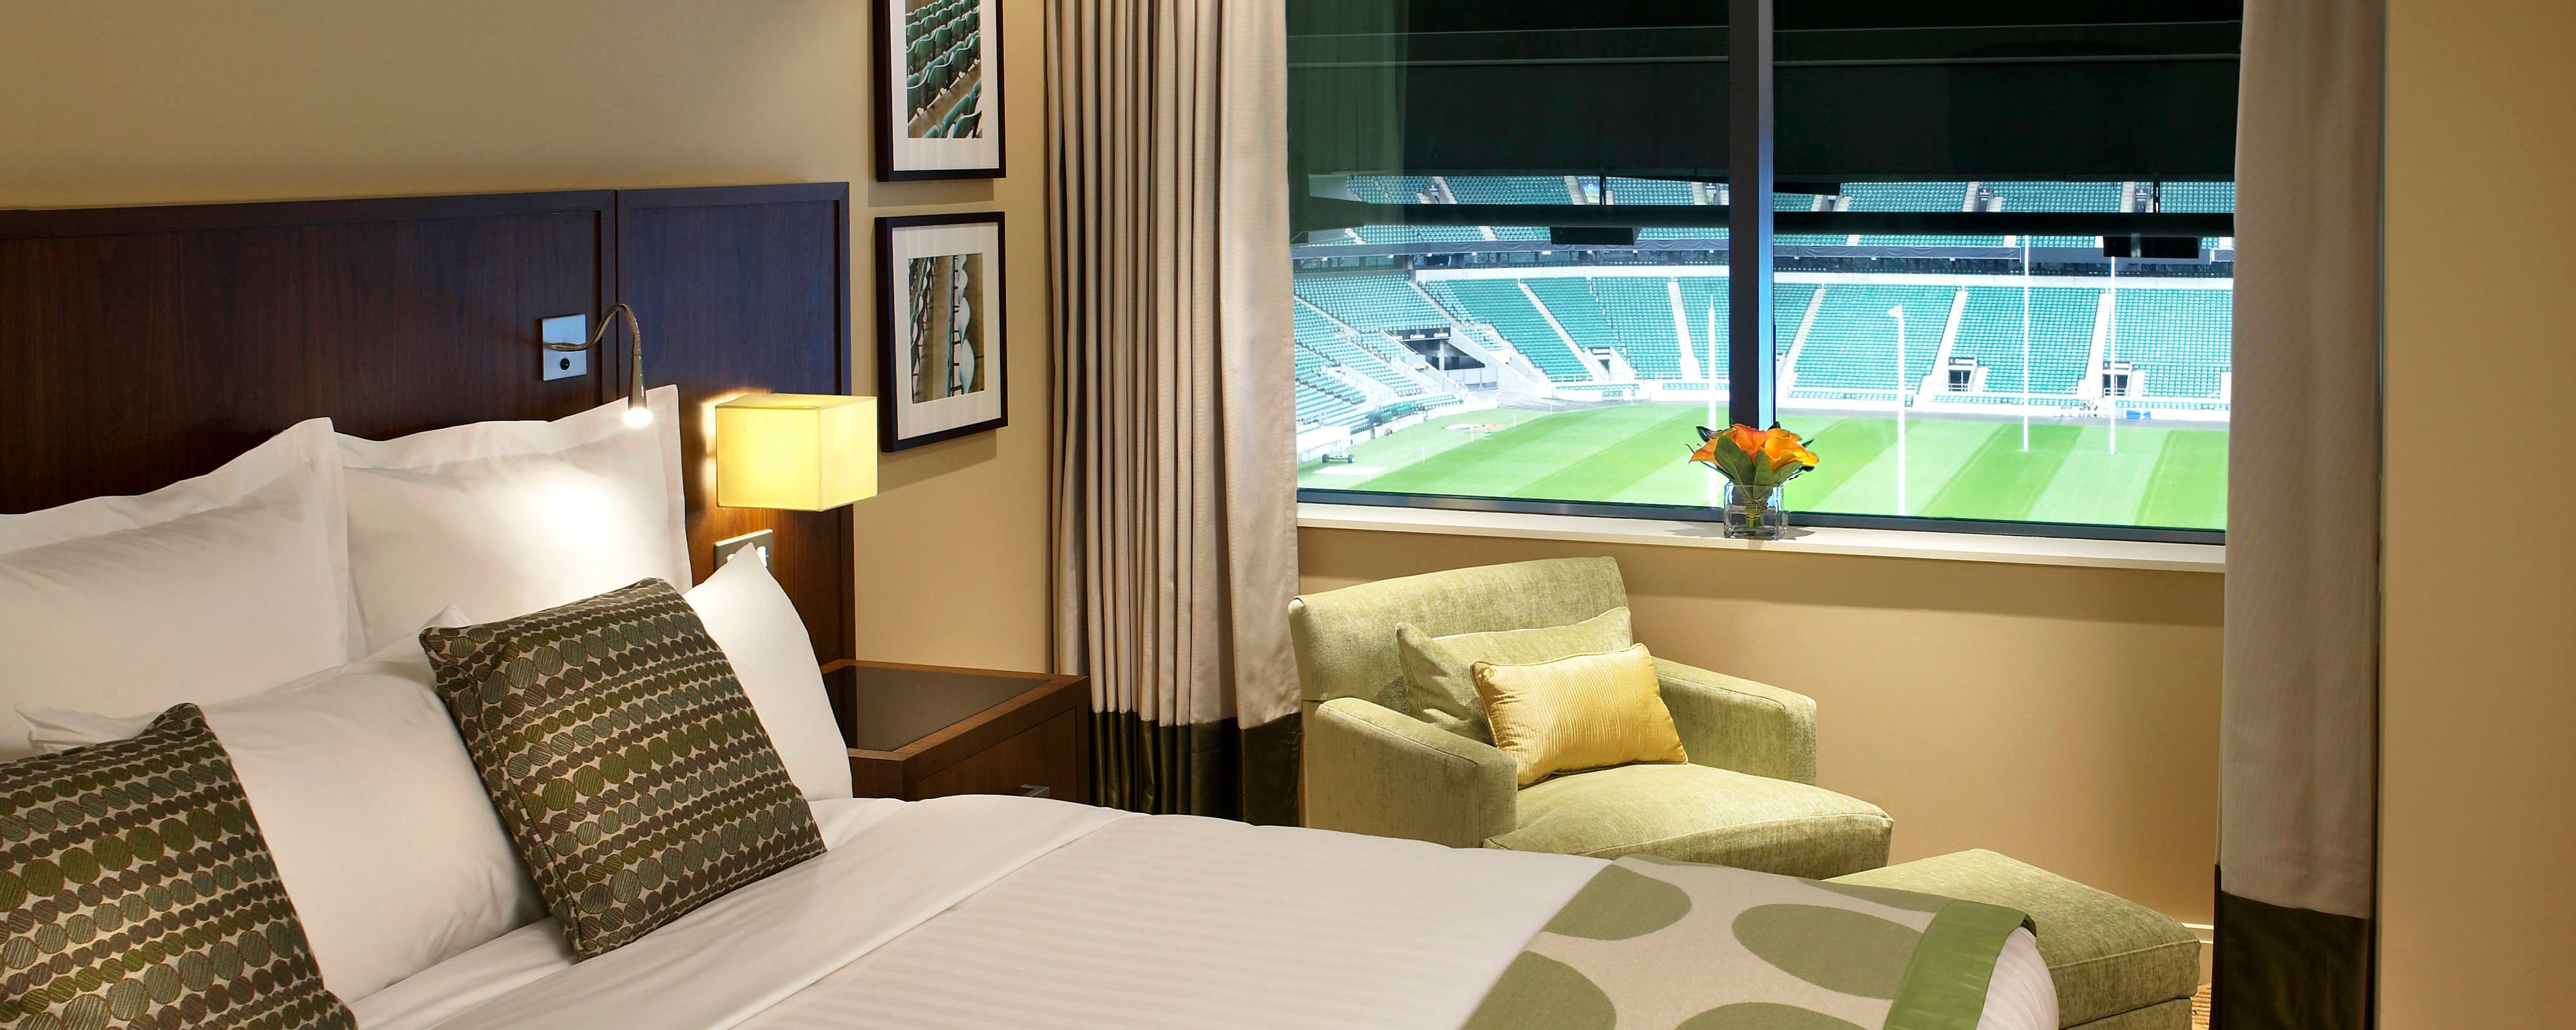 Suíte Pitch View, Marriott Twickenham Hotel